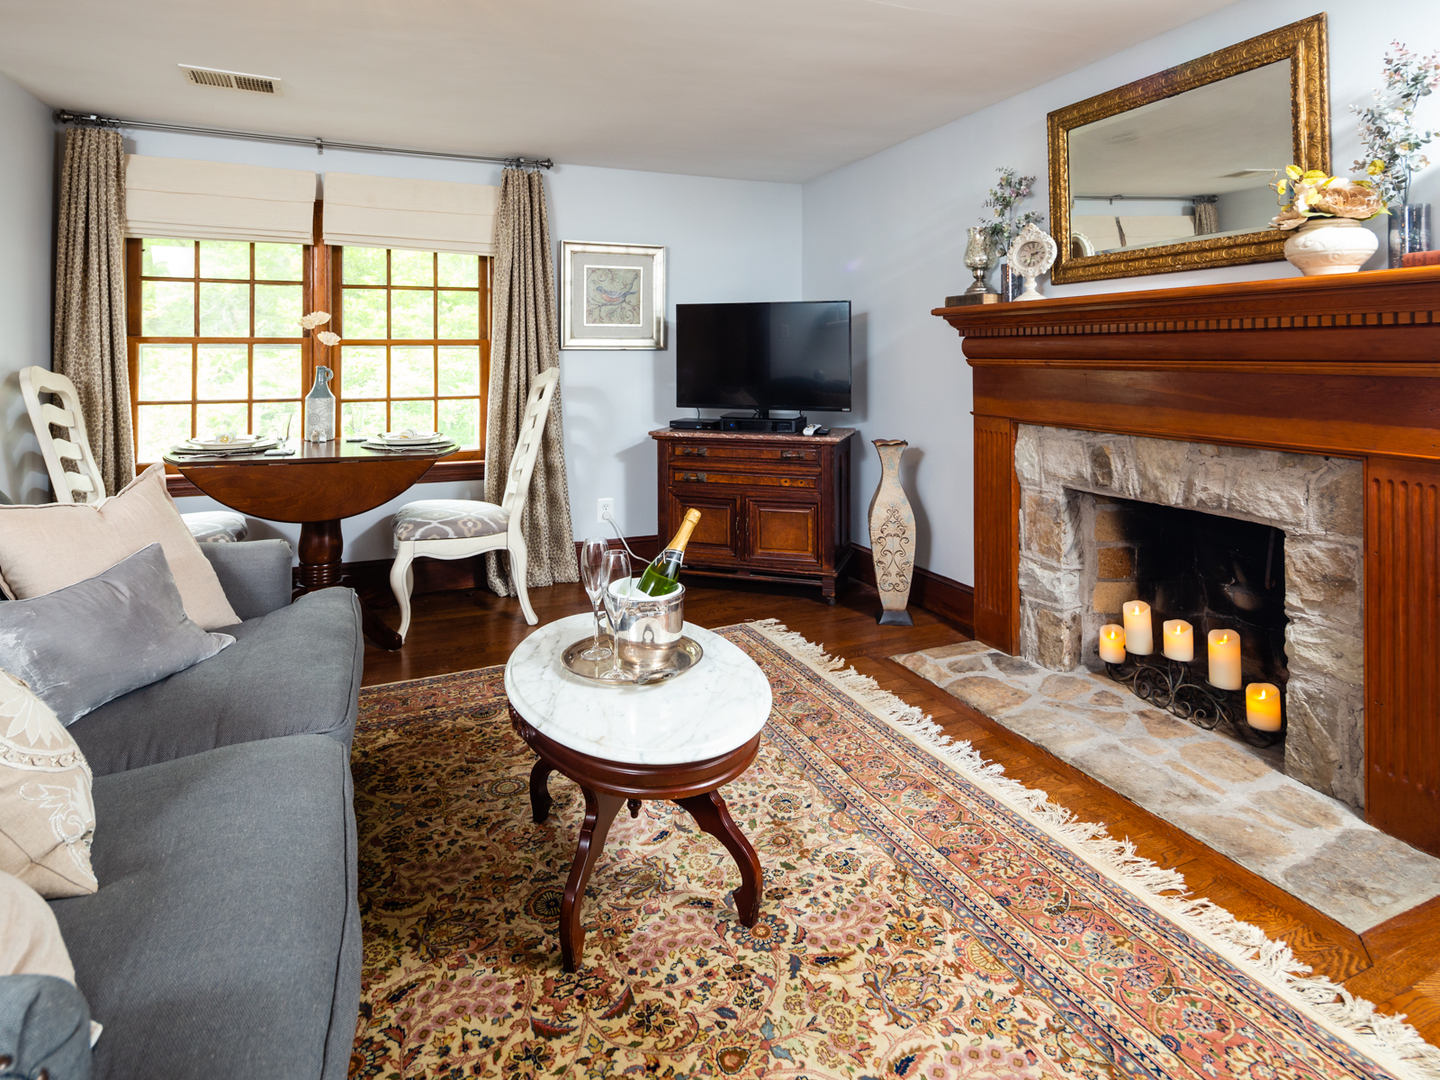 A living room filled with furniture and a fire place at Airwell Bed and Breakfast.